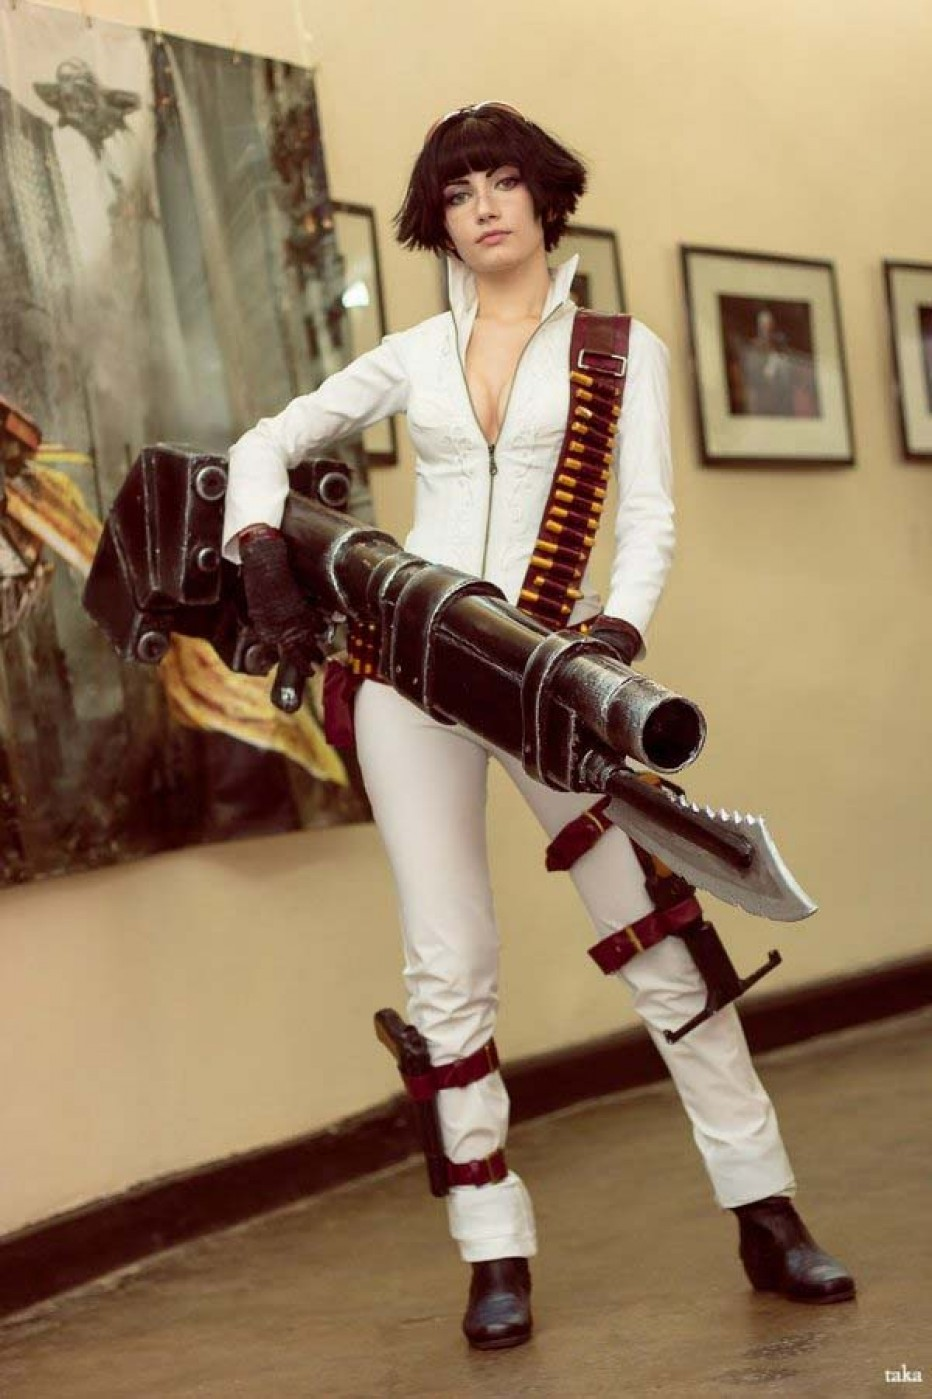 Lady-Devil-May-Cry-Cosplay-Gamers-Heroes-18.jpg